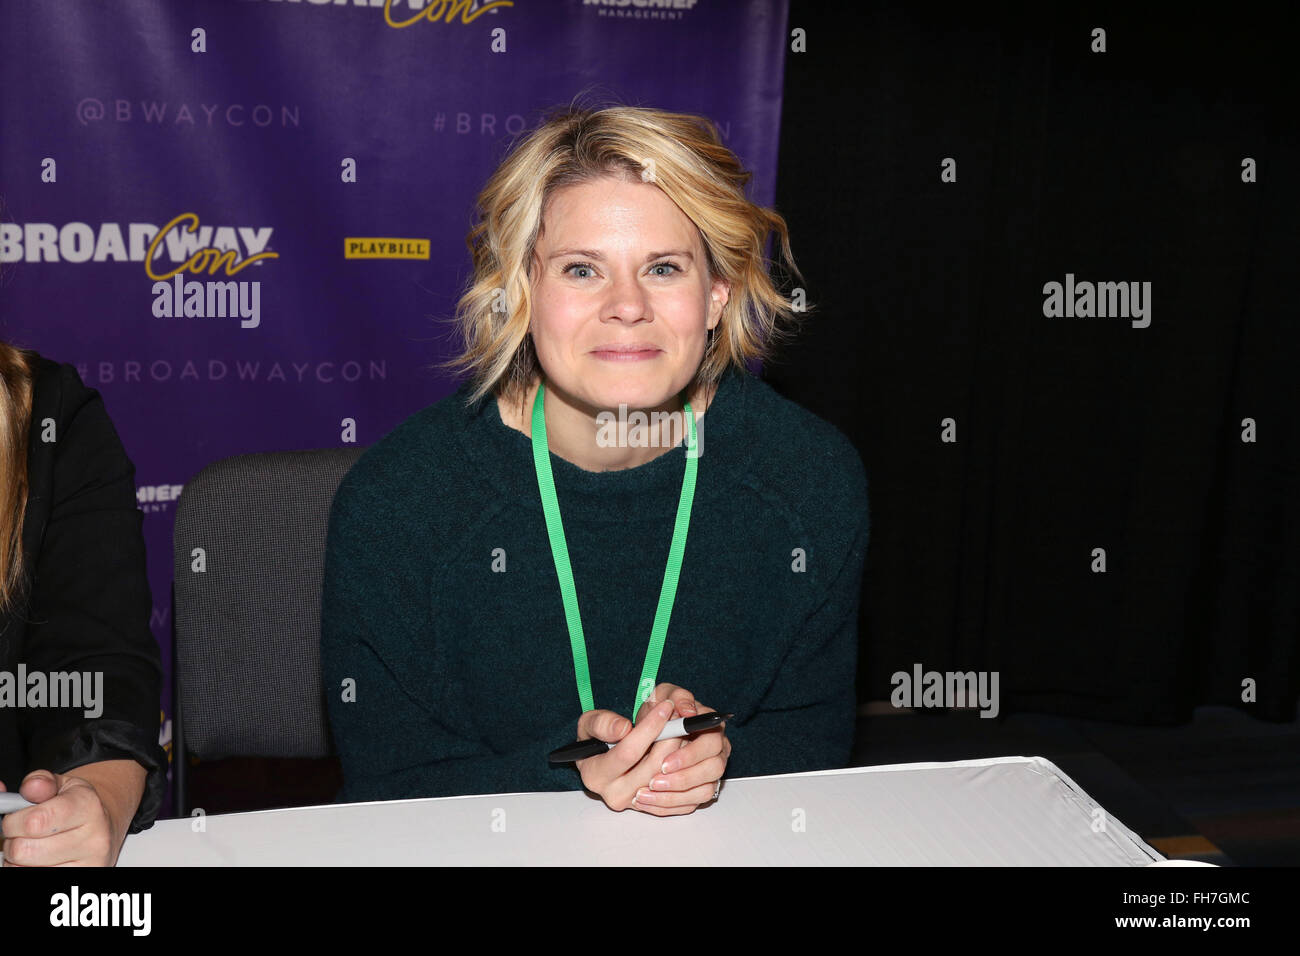 BroadwayCon - Day 2  Featuring: Celia Keenan-Bolger Where: New York, United States When: 01 Jan 1970 - Stock Image